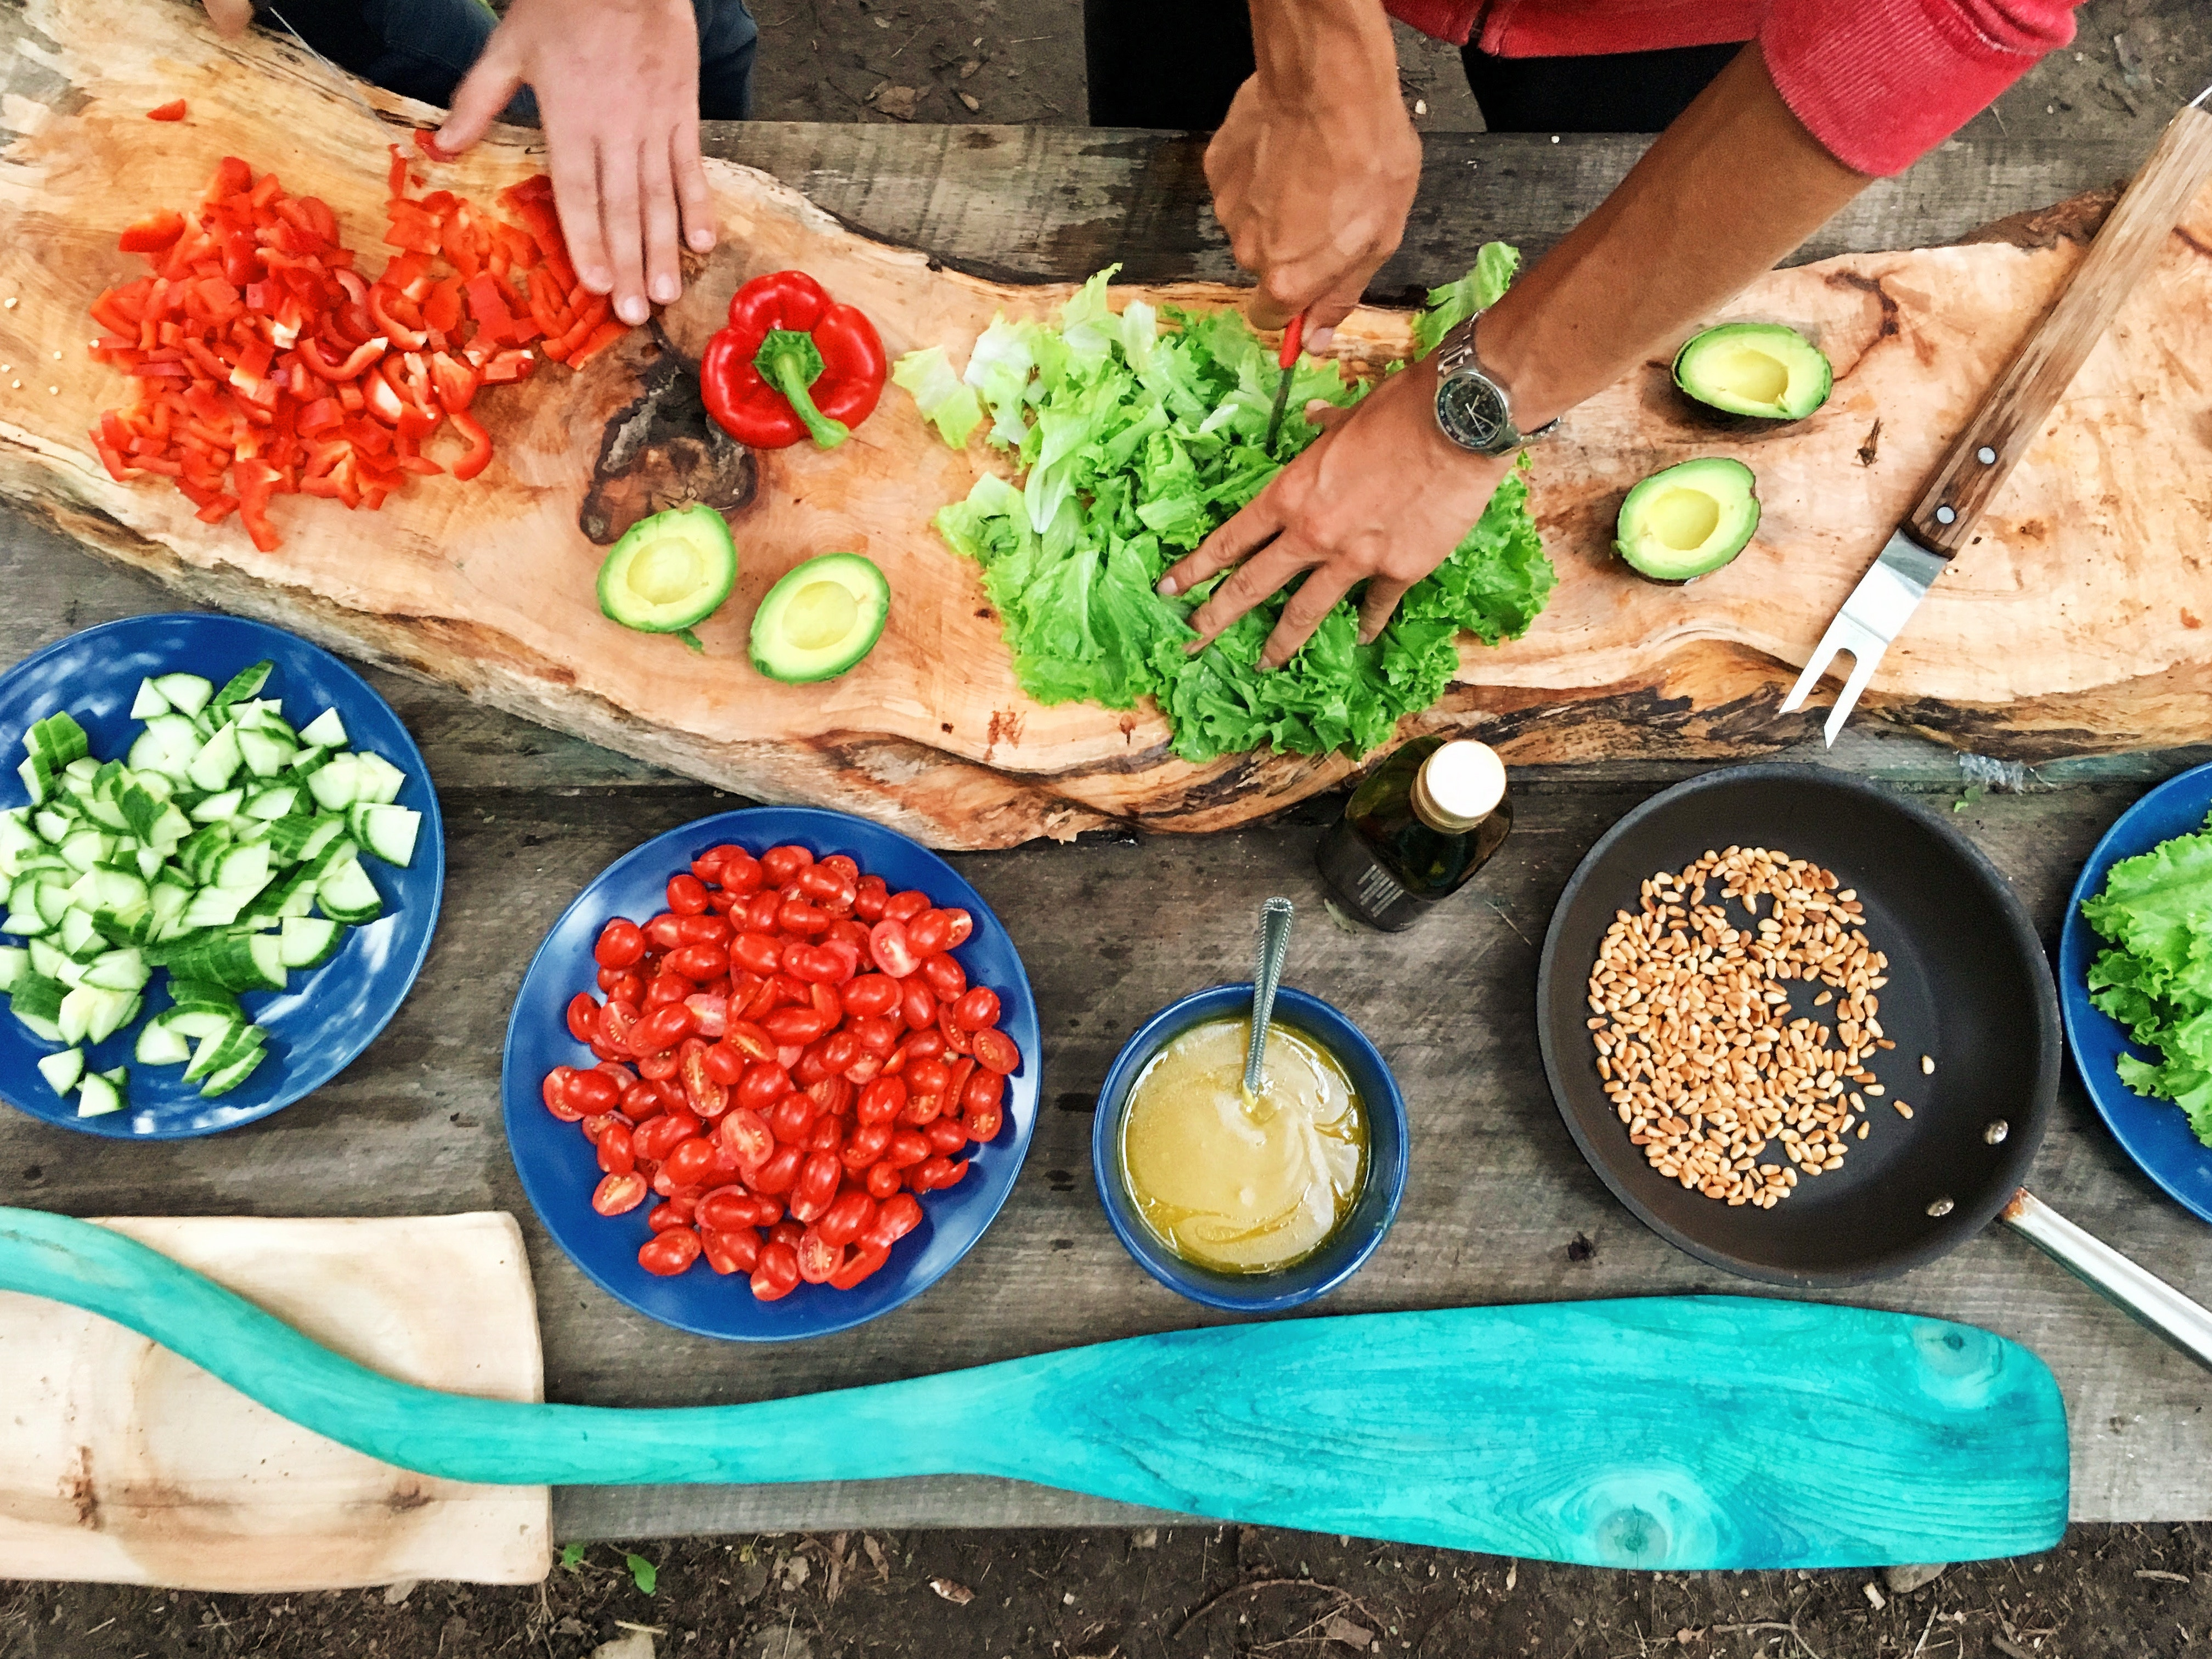 aerial picture of of lettuce being cut up, red bell peppers being cut by another person, a barbecue fork beside the lettuce, indigo blue bowls filled with already cut cucumbers, cherry tomatoes, some type of yellow dressing with a spoon in it, and a black bowl with seeds, also on the cutting board is cut avocado without pits. The cutting board is made of a unique piece of wood or stone, and for visual interests, there is a teal colored wooden paddle at the bottom of the indigo bowls